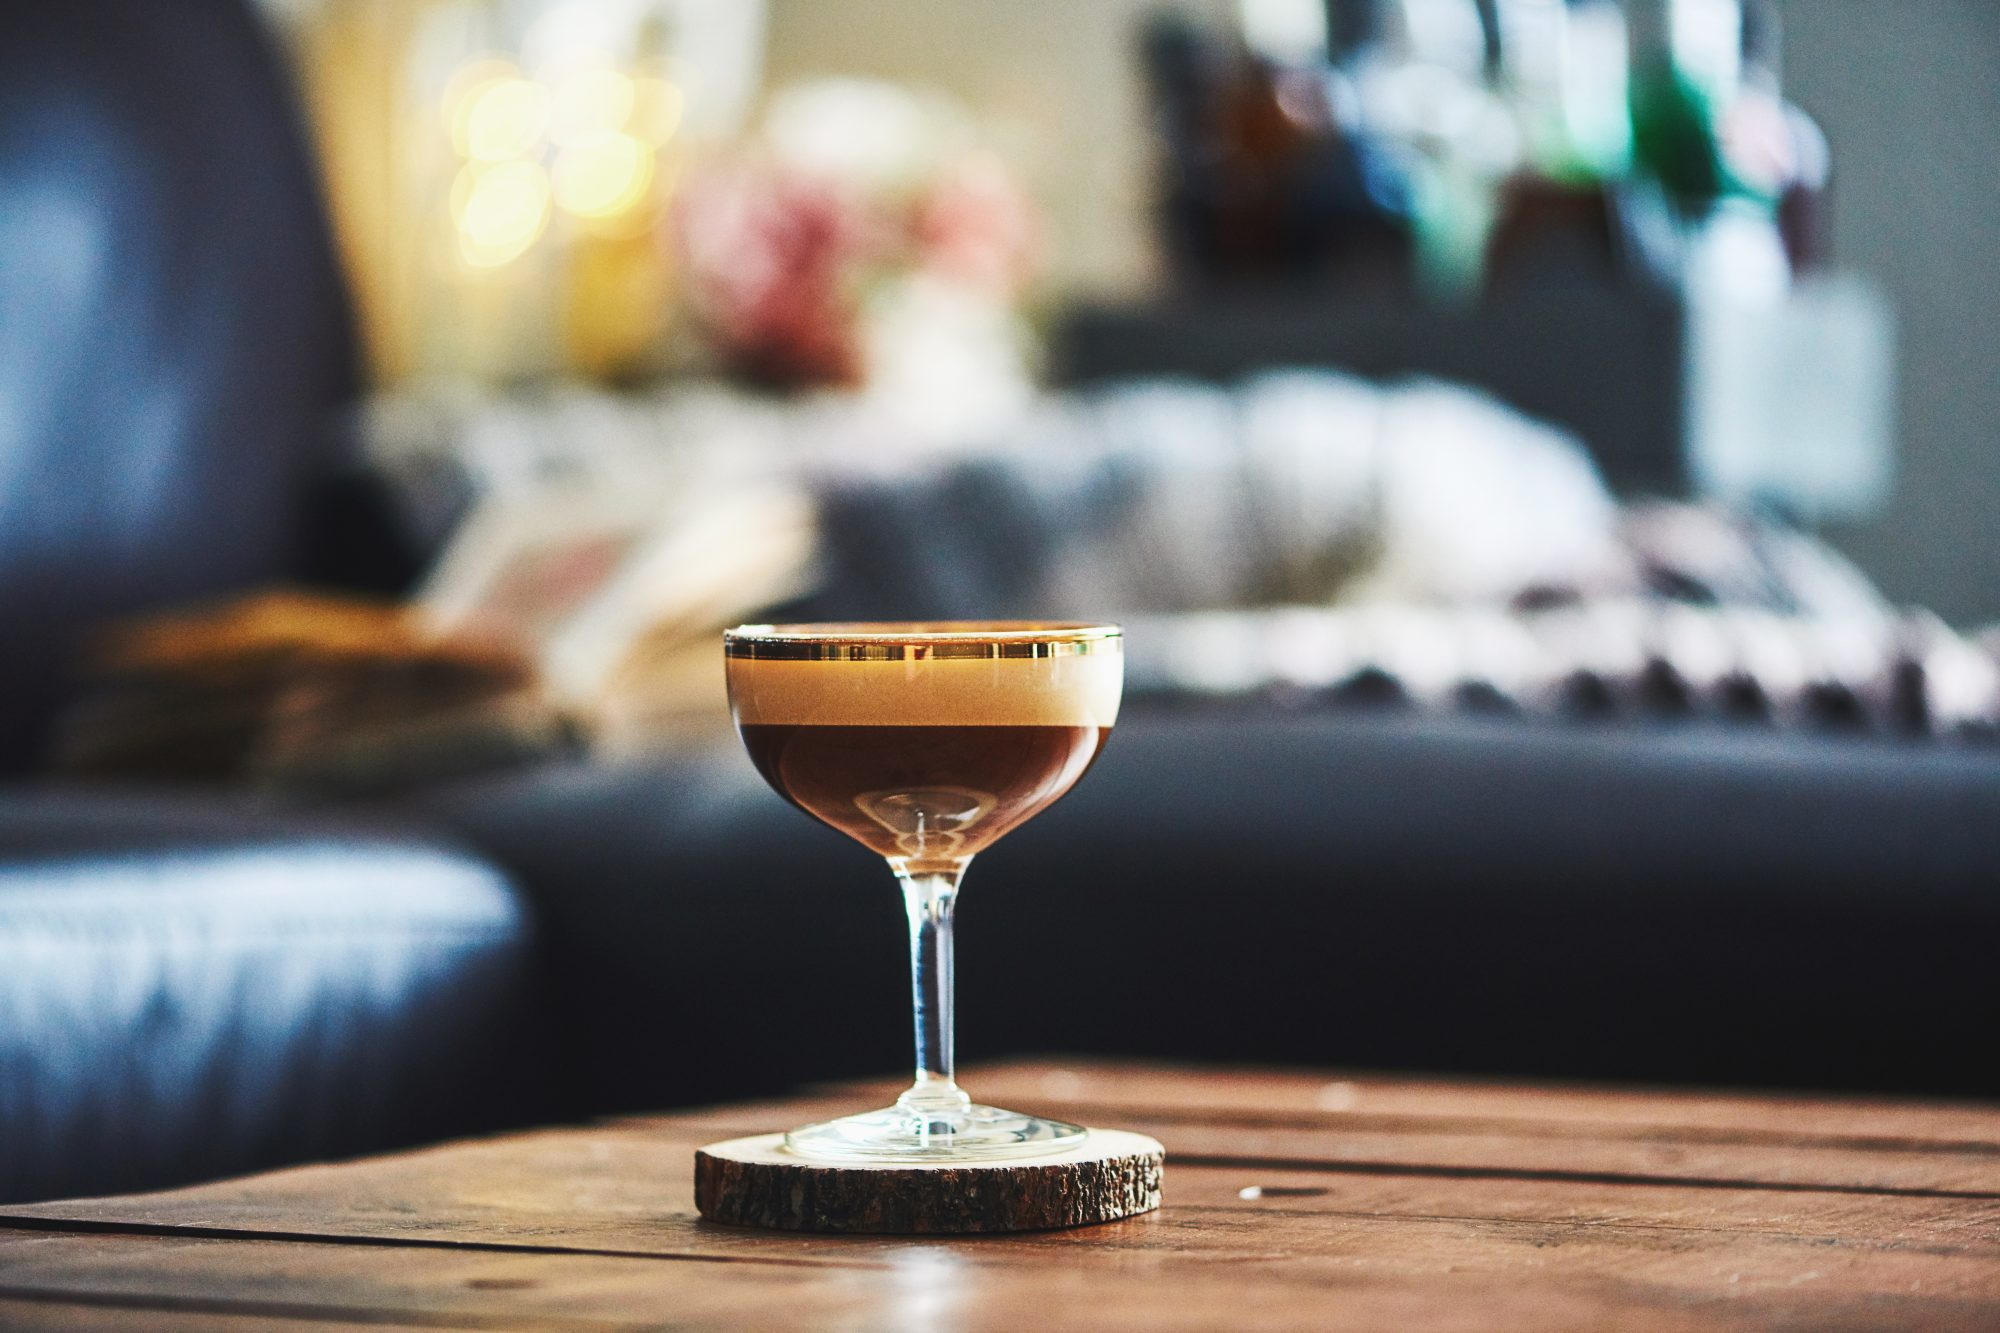 Meet the Espresso Martini, the Cocktail That's Coming to Wake Up Your